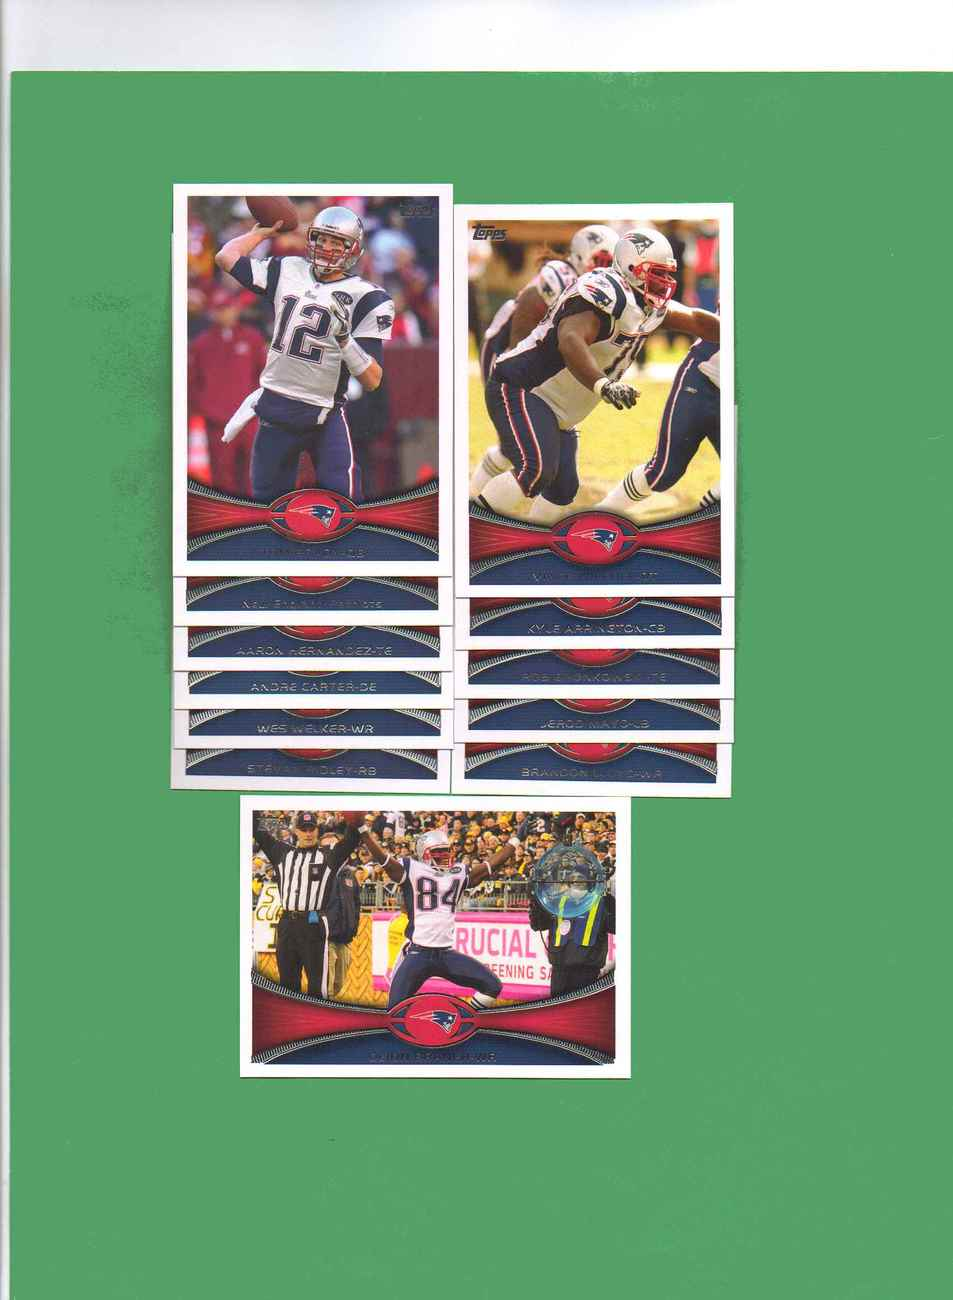 Primary image for 2012 Topps New England Patriots Football Set